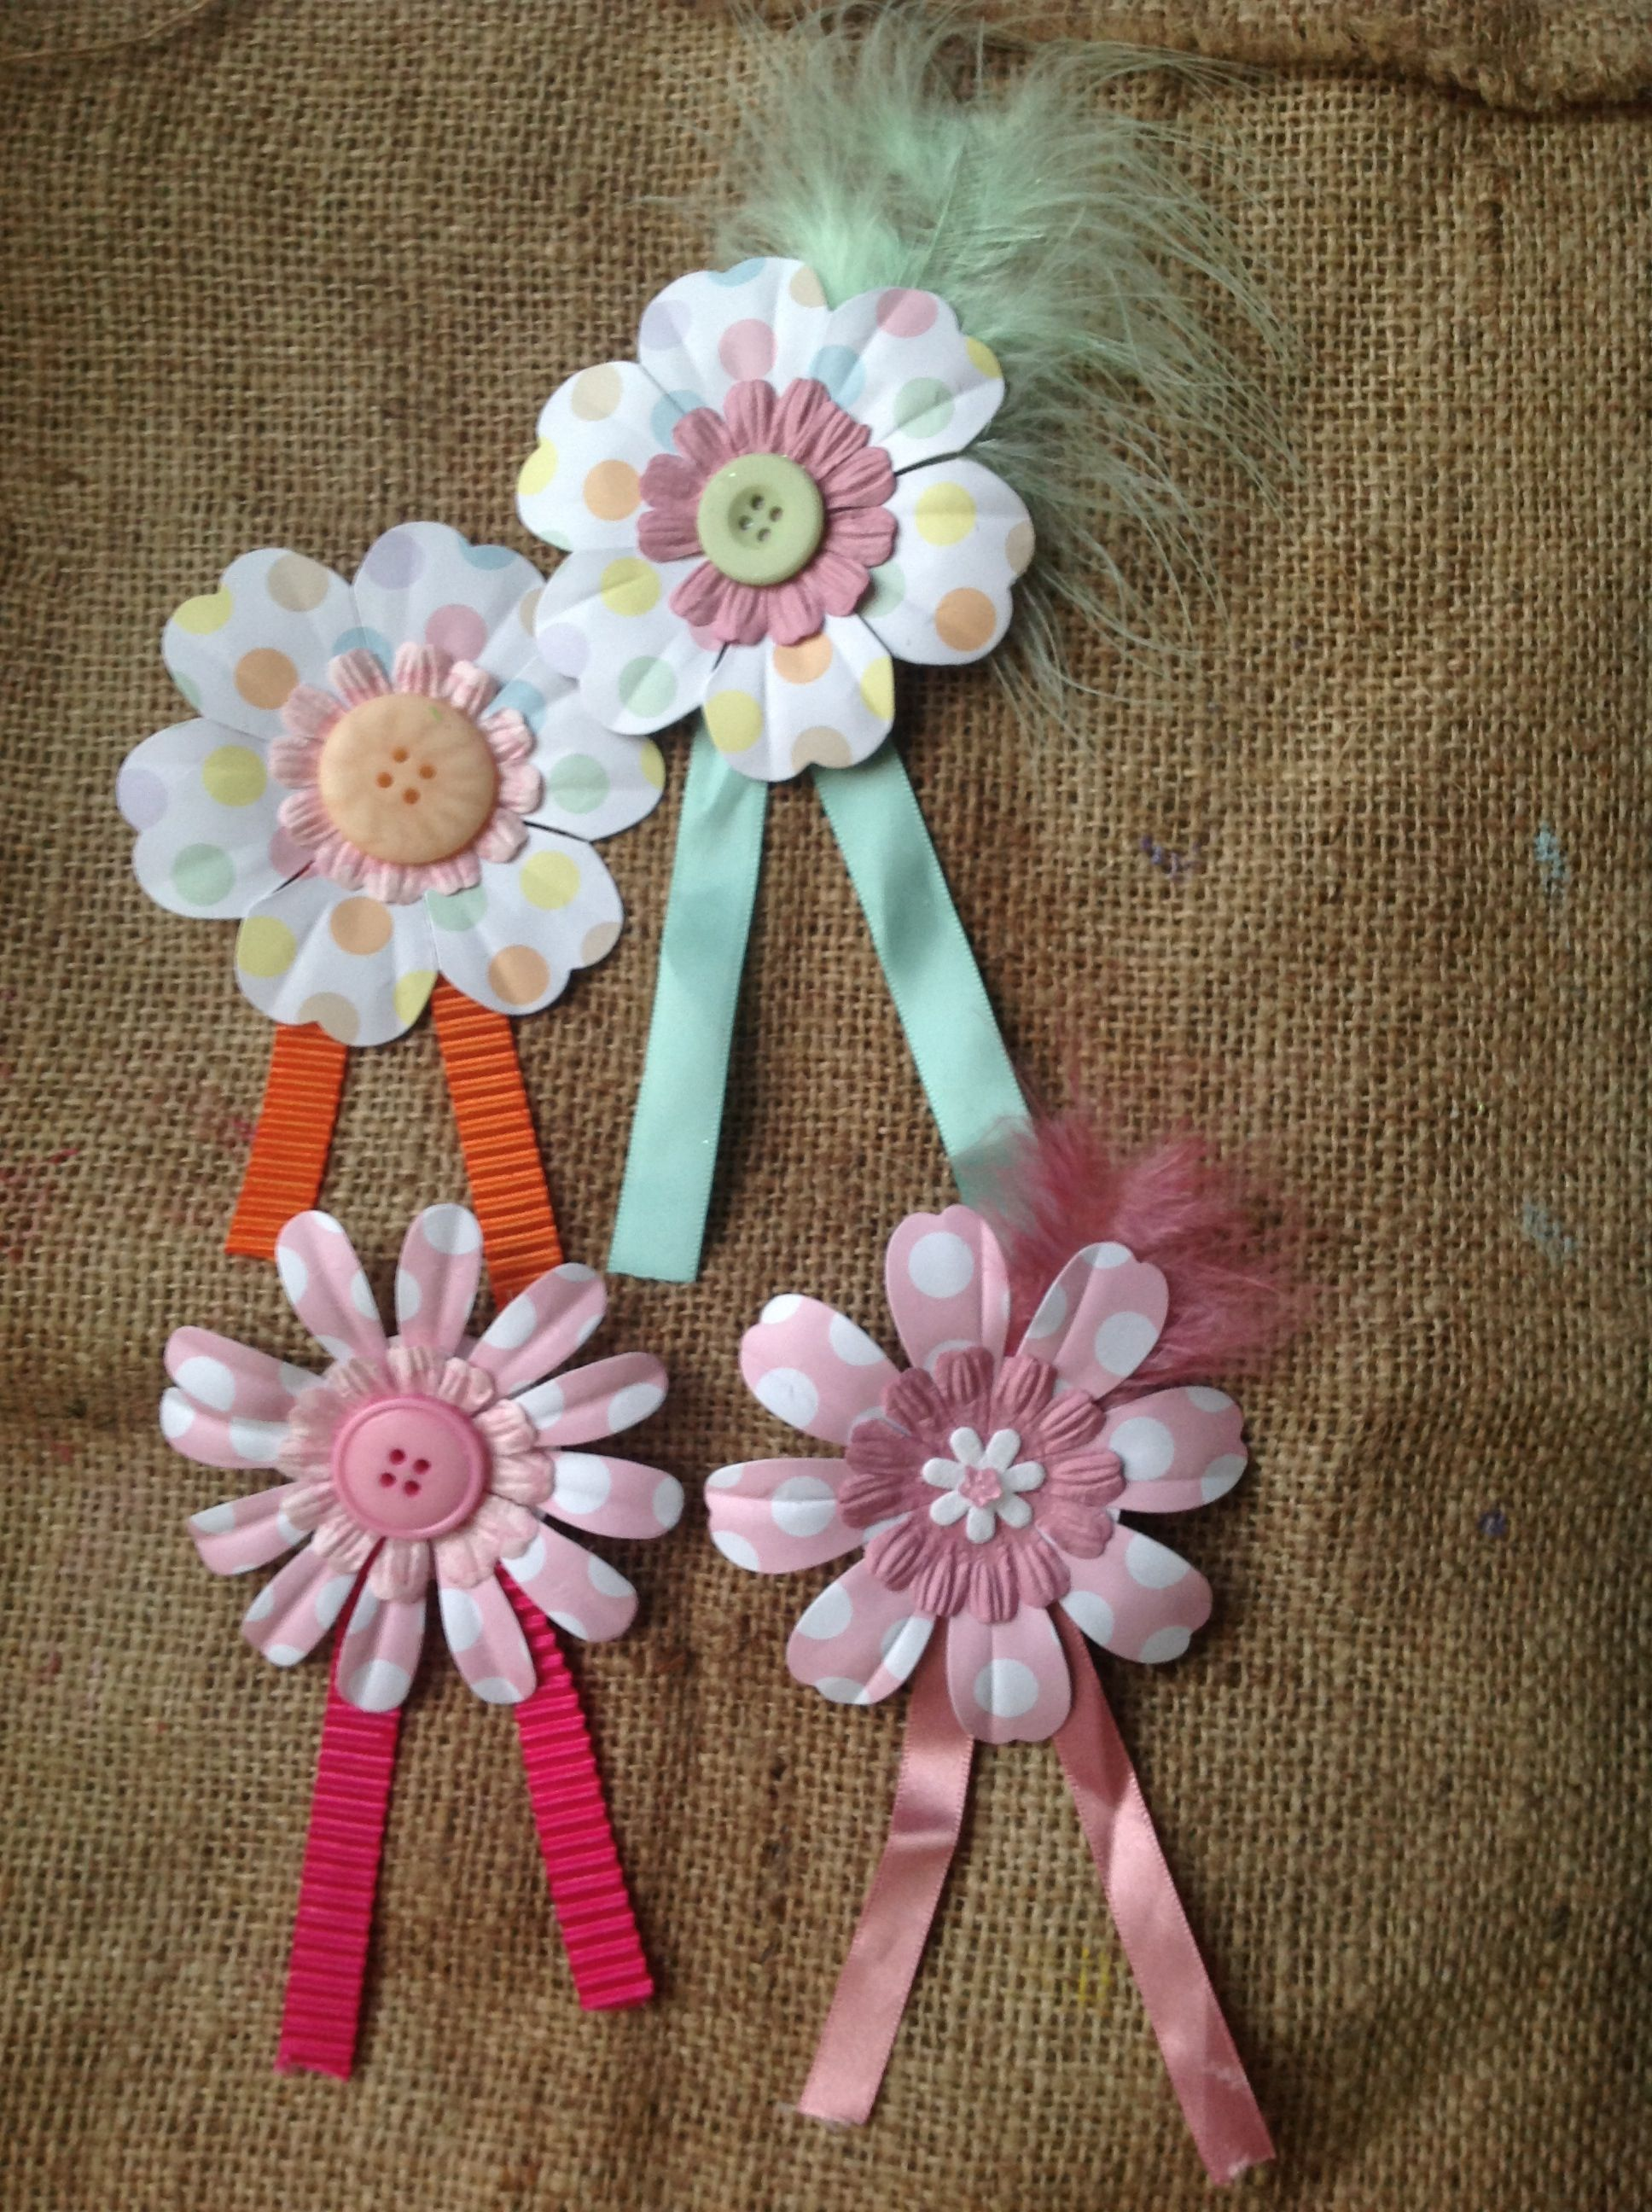 Made By Lowrie Paper Flower Brooches School Holiday Crafts With My